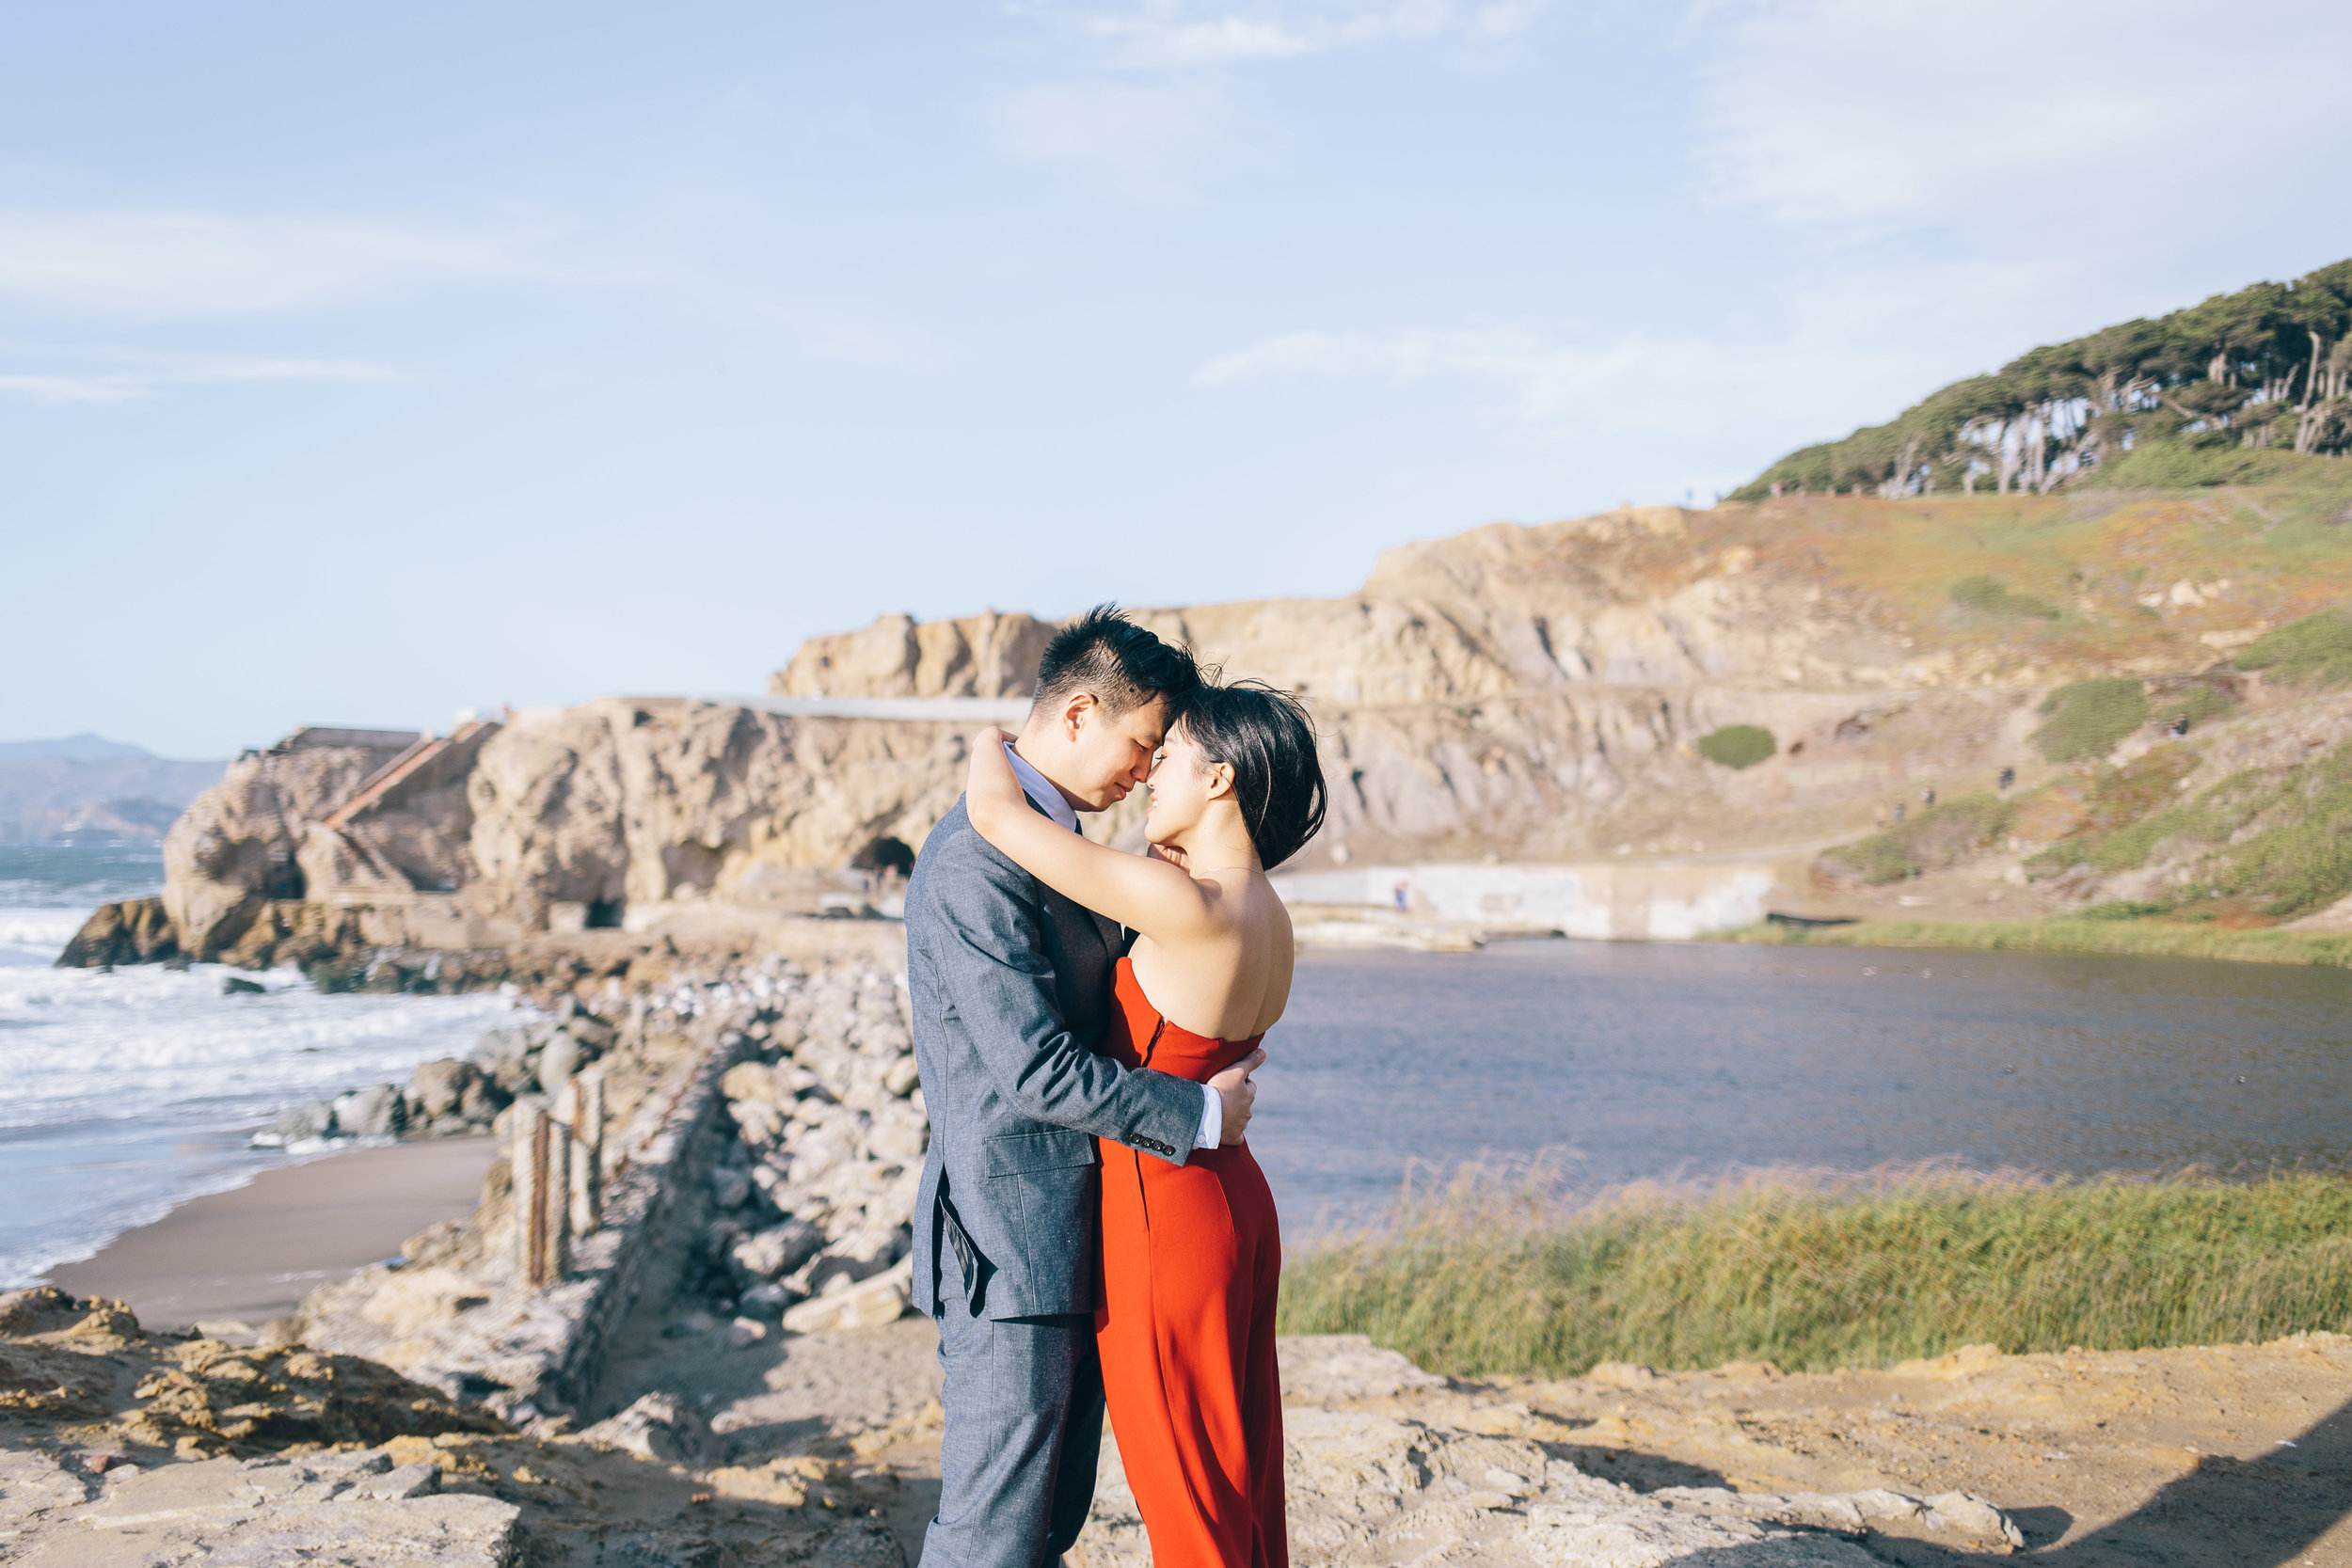 Pre-Wedding Photos in San Francisco by JBJ Pictures Pre-Wedding Photographer, Engagement Session and Wedding Photography in Napa, Sonoma, SF Bay Area (29).jpg